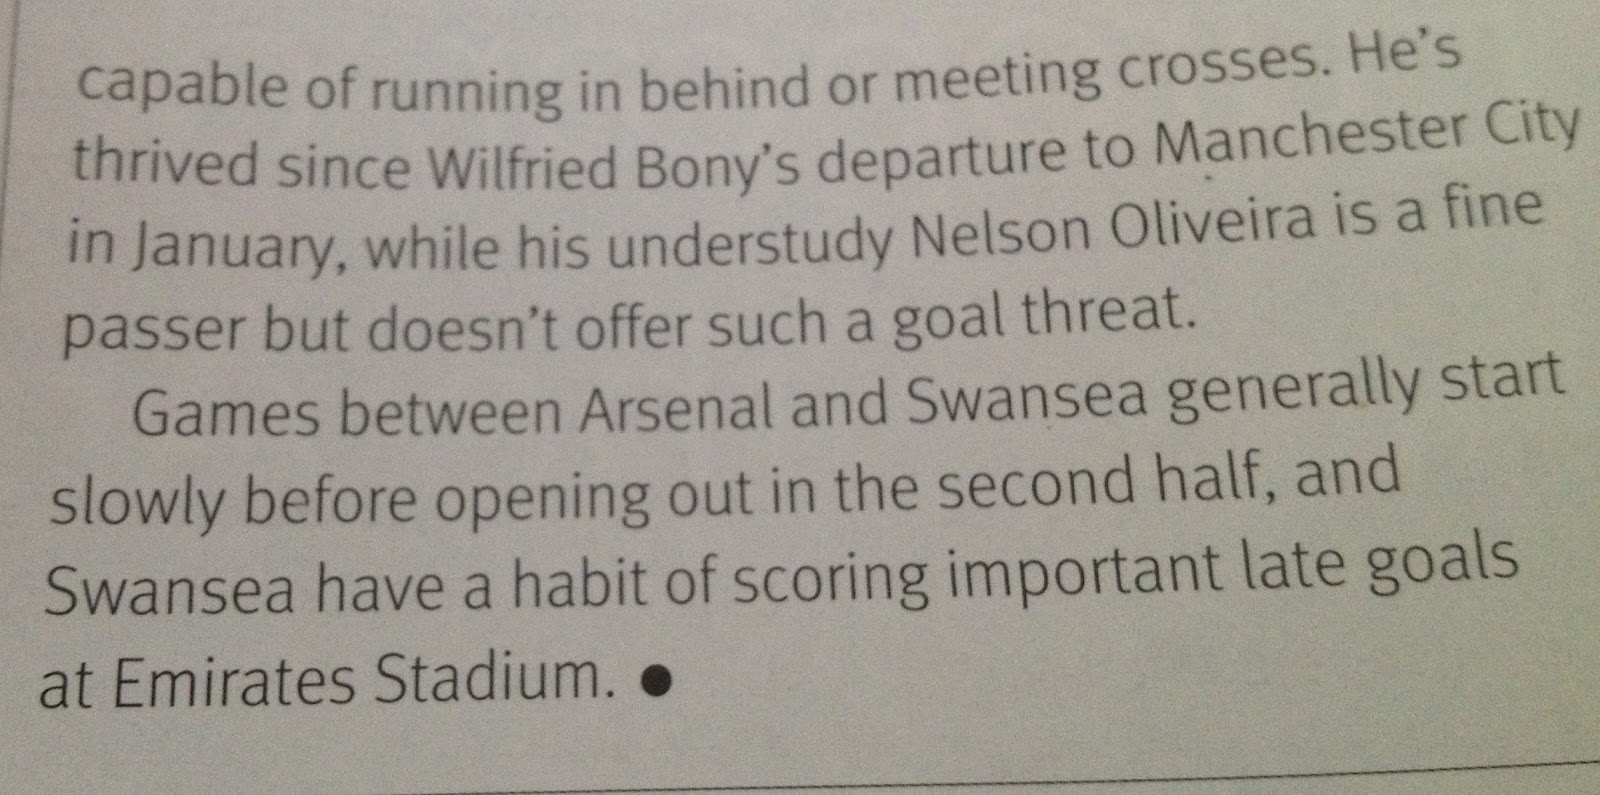 We are premier league 2015 michael cox bang on the money again in his preview of arsenal swansea before gomis late winner nvjuhfo Images